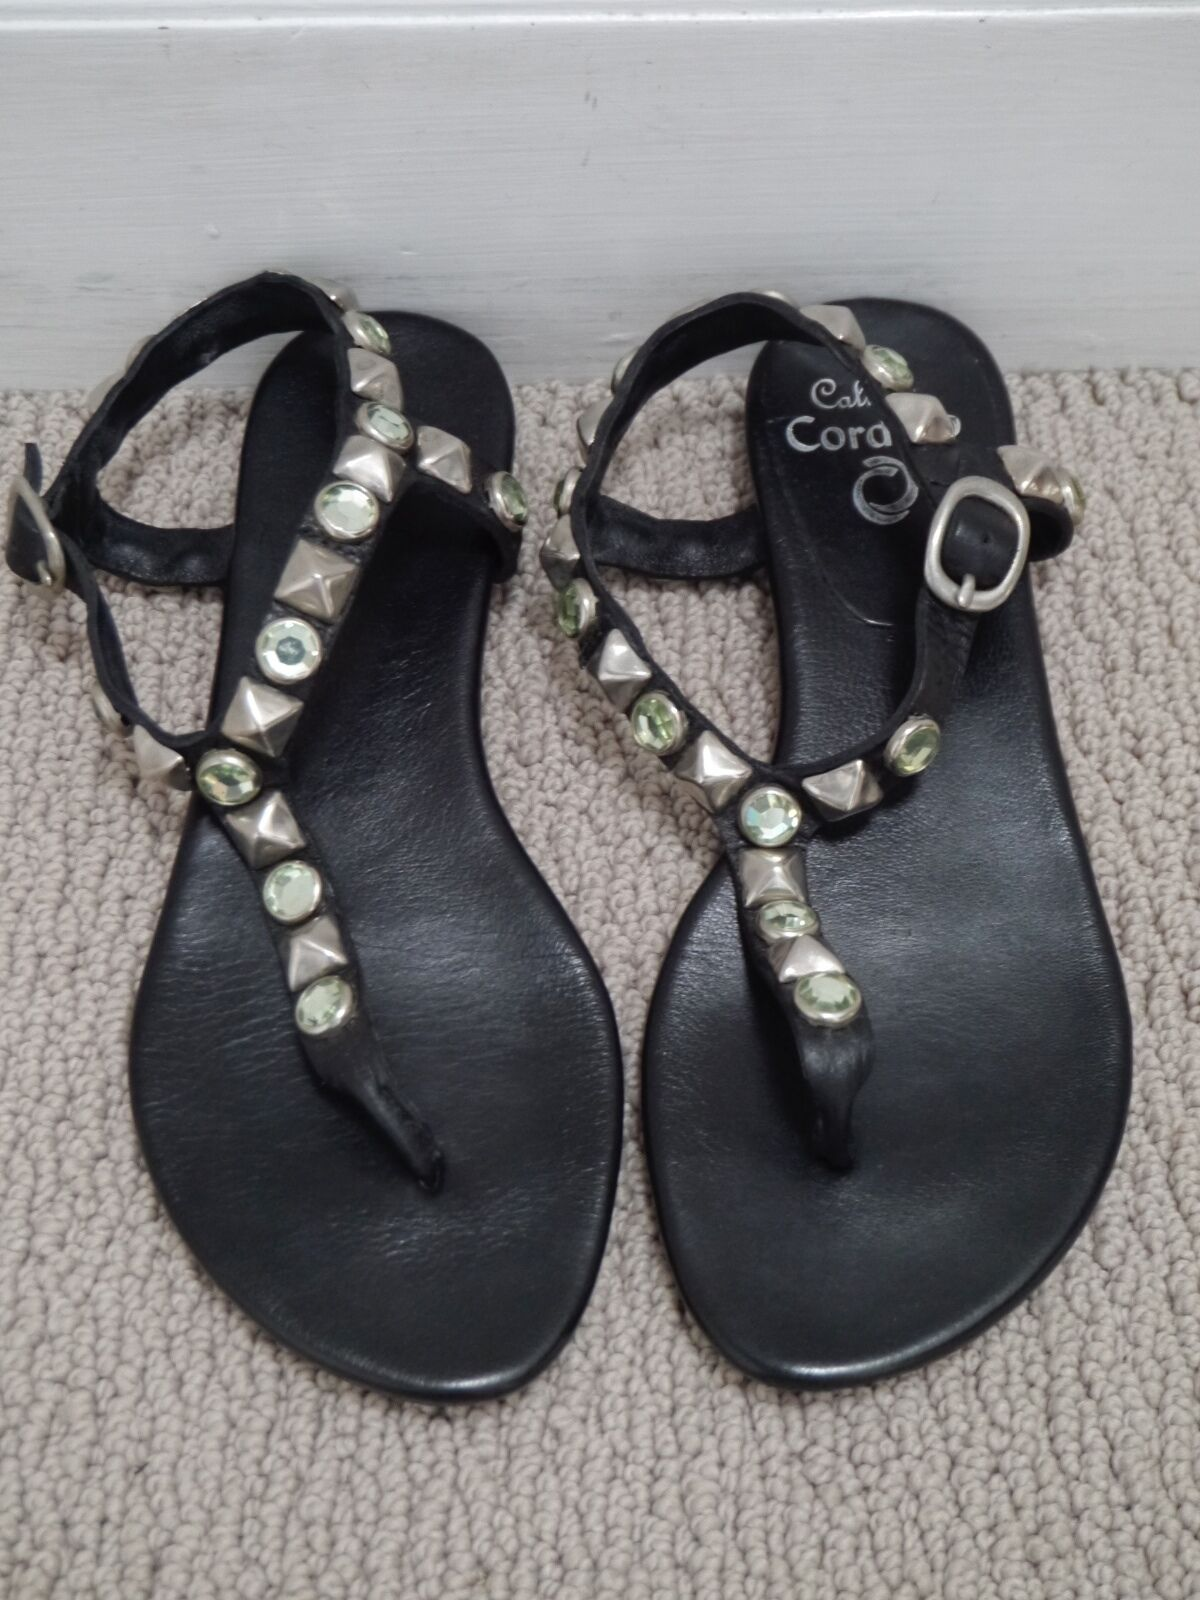 CALLEEN CORDERO black leather sandals with silver and jeweled stud details sz 6